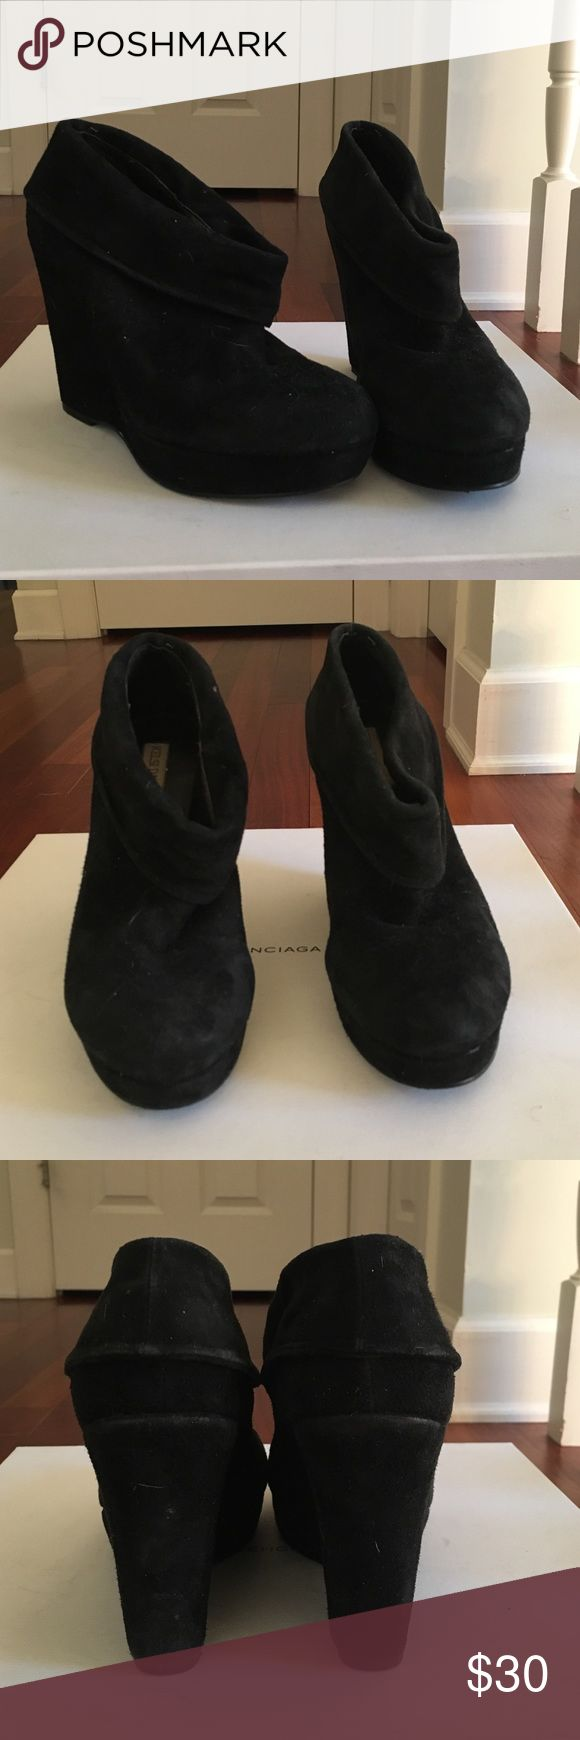 Kelsi Dagger Black Suede Booties Kelsi Dagger Black Suede Booties. These are so adorable and in great condition. They look good with jeans leggings dresses and are so comfortable Kelsi Dagger Shoes Ankle Boots & Booties